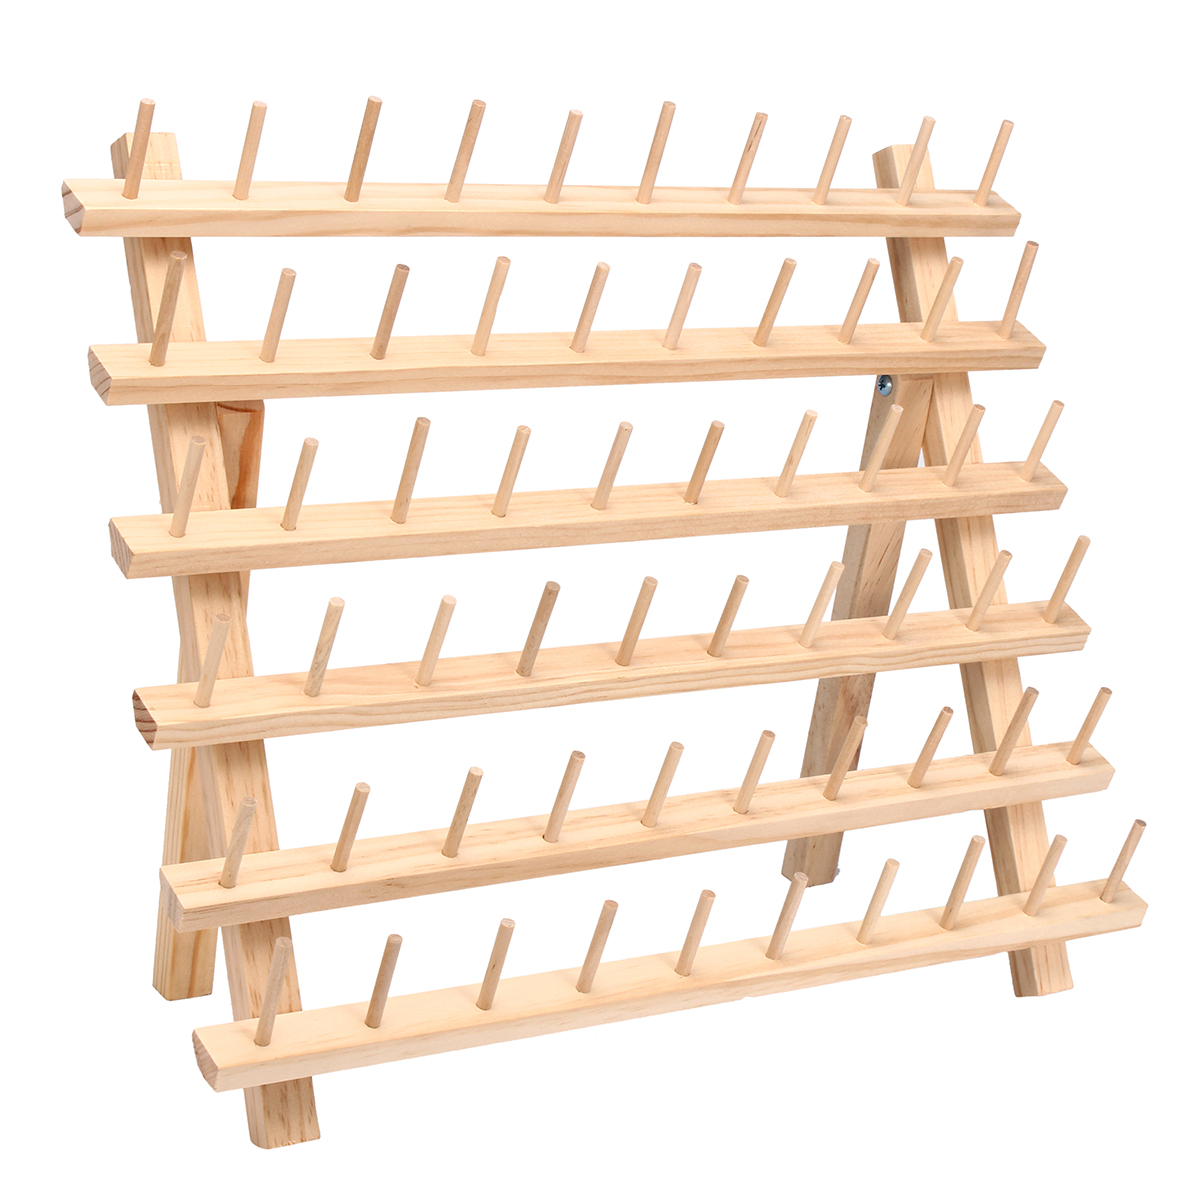 60 Spools Sewing Thread Rack Embroidery Storage Wooden Holder Cones Stand Shelf Needlework Tool